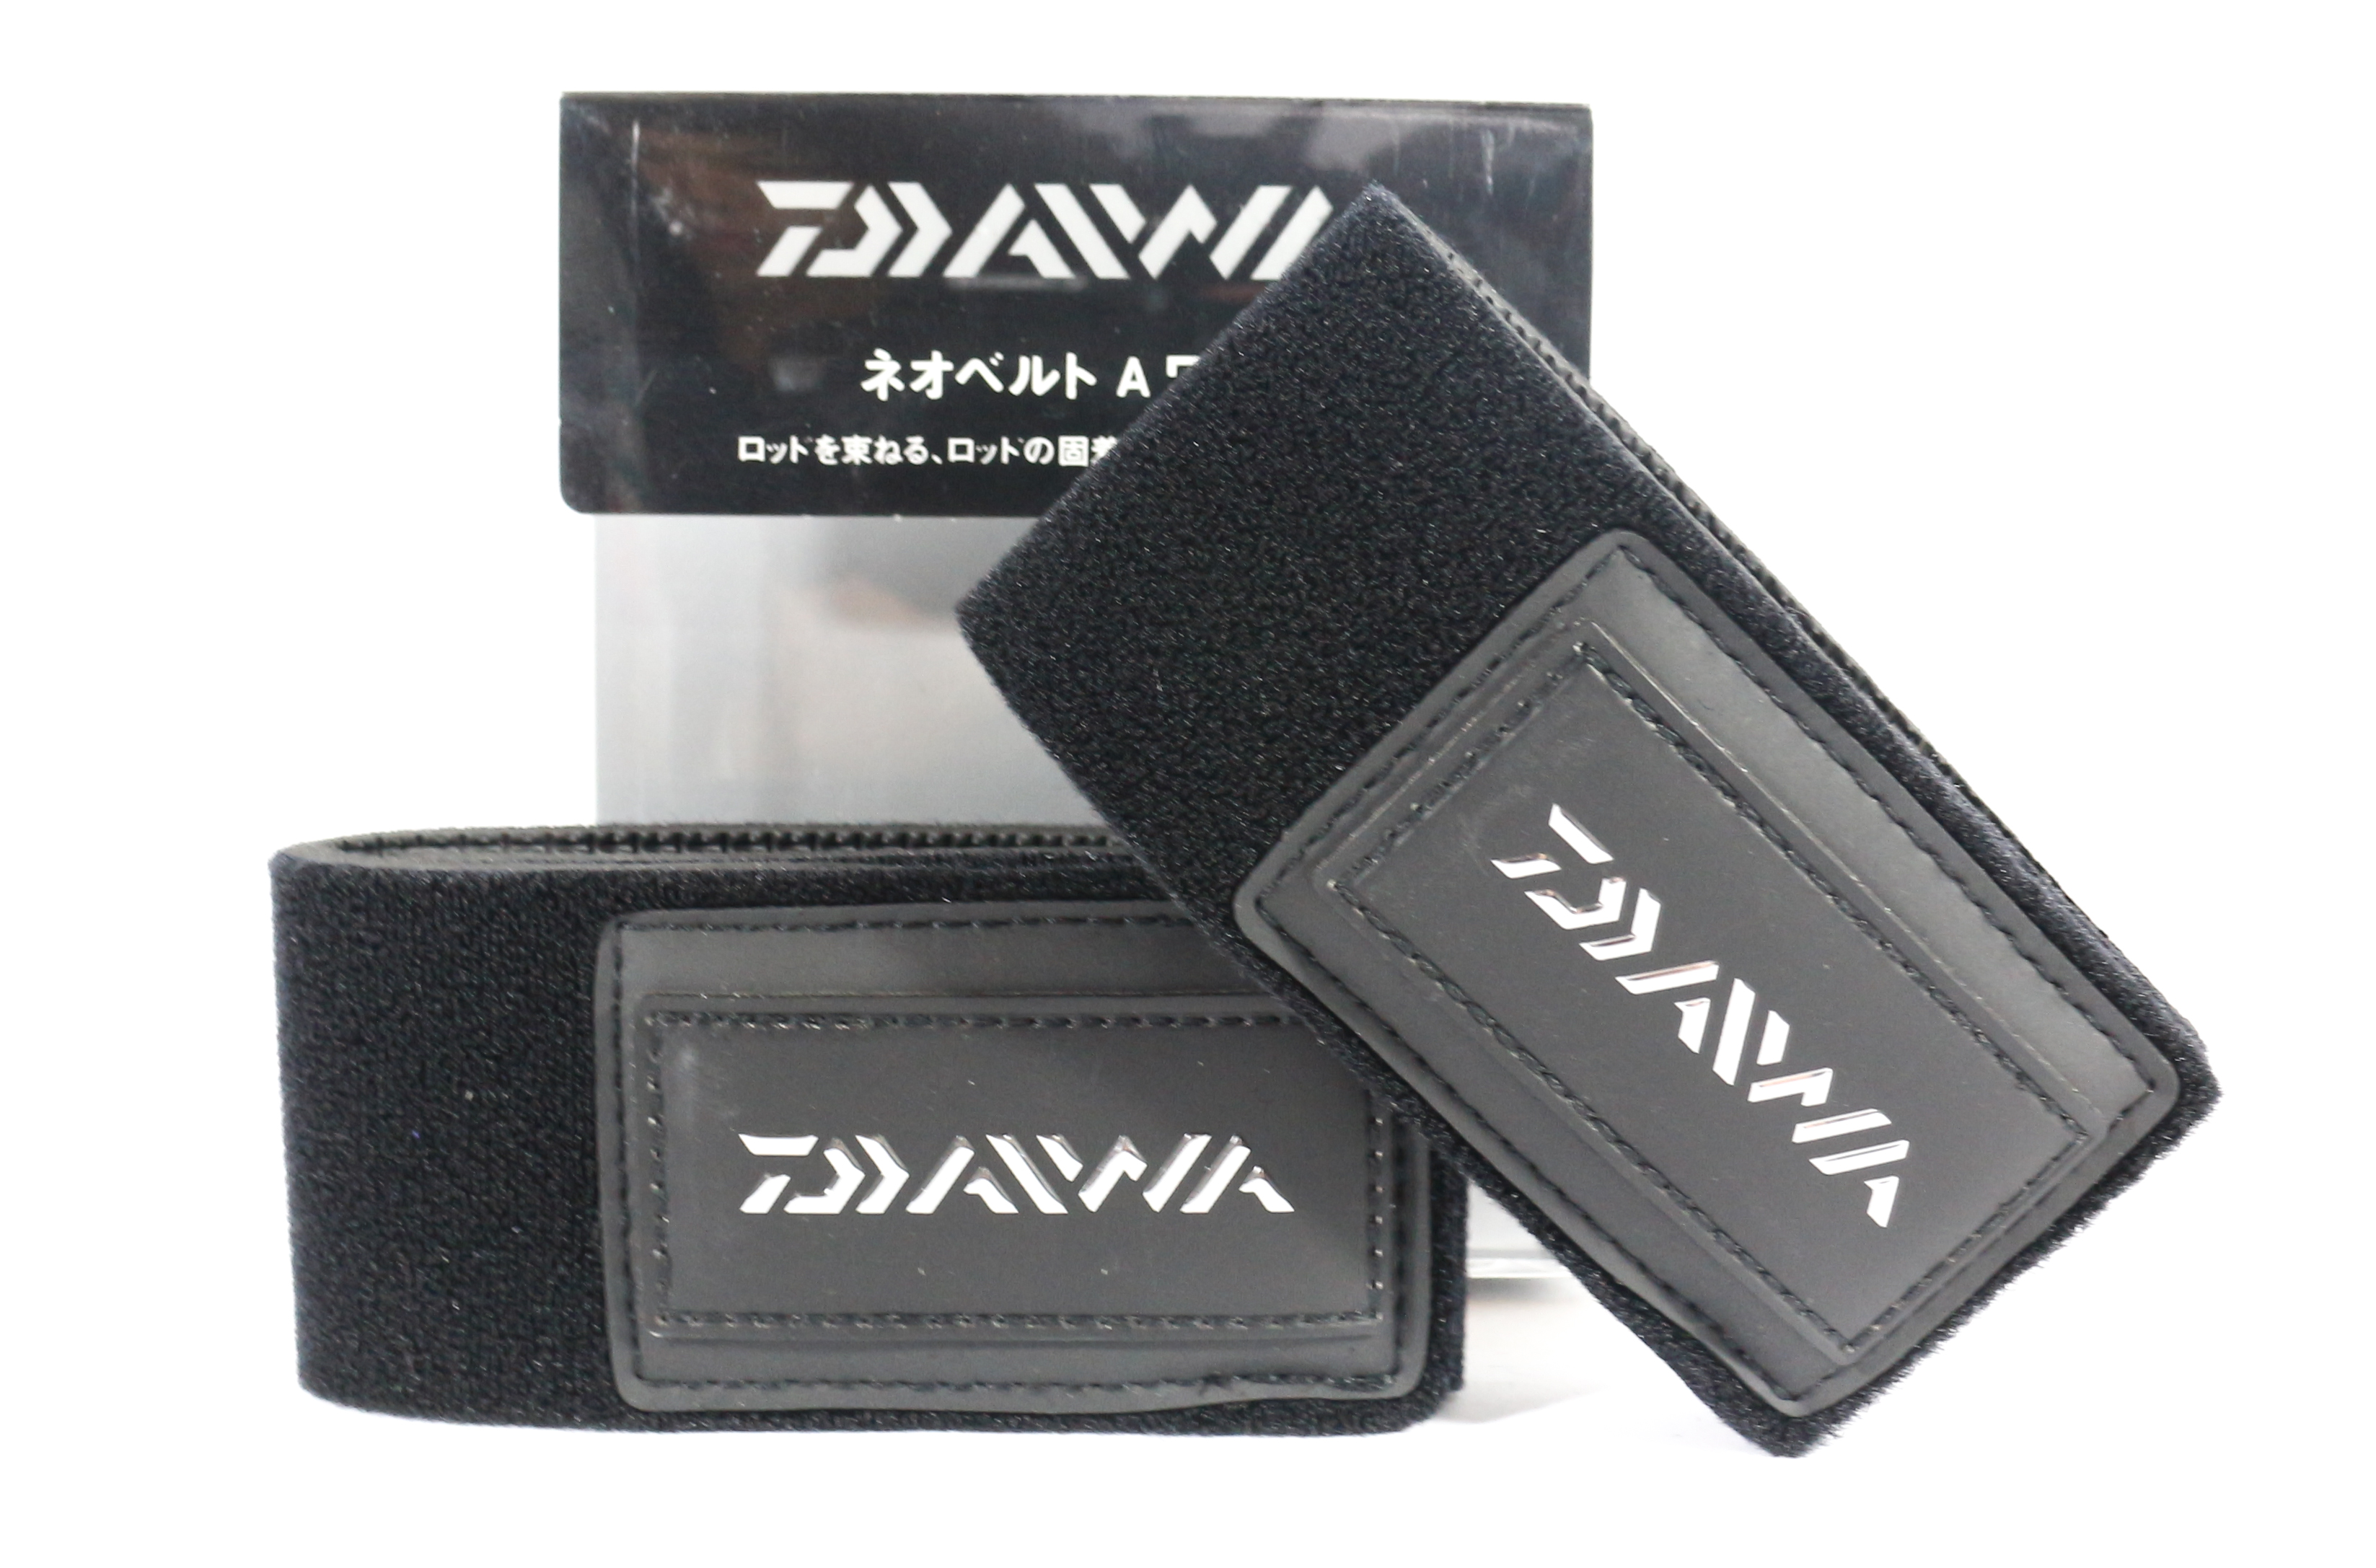 Sale Daiwa Rod Strap Wide Neo 320 x 50 mm (8006)